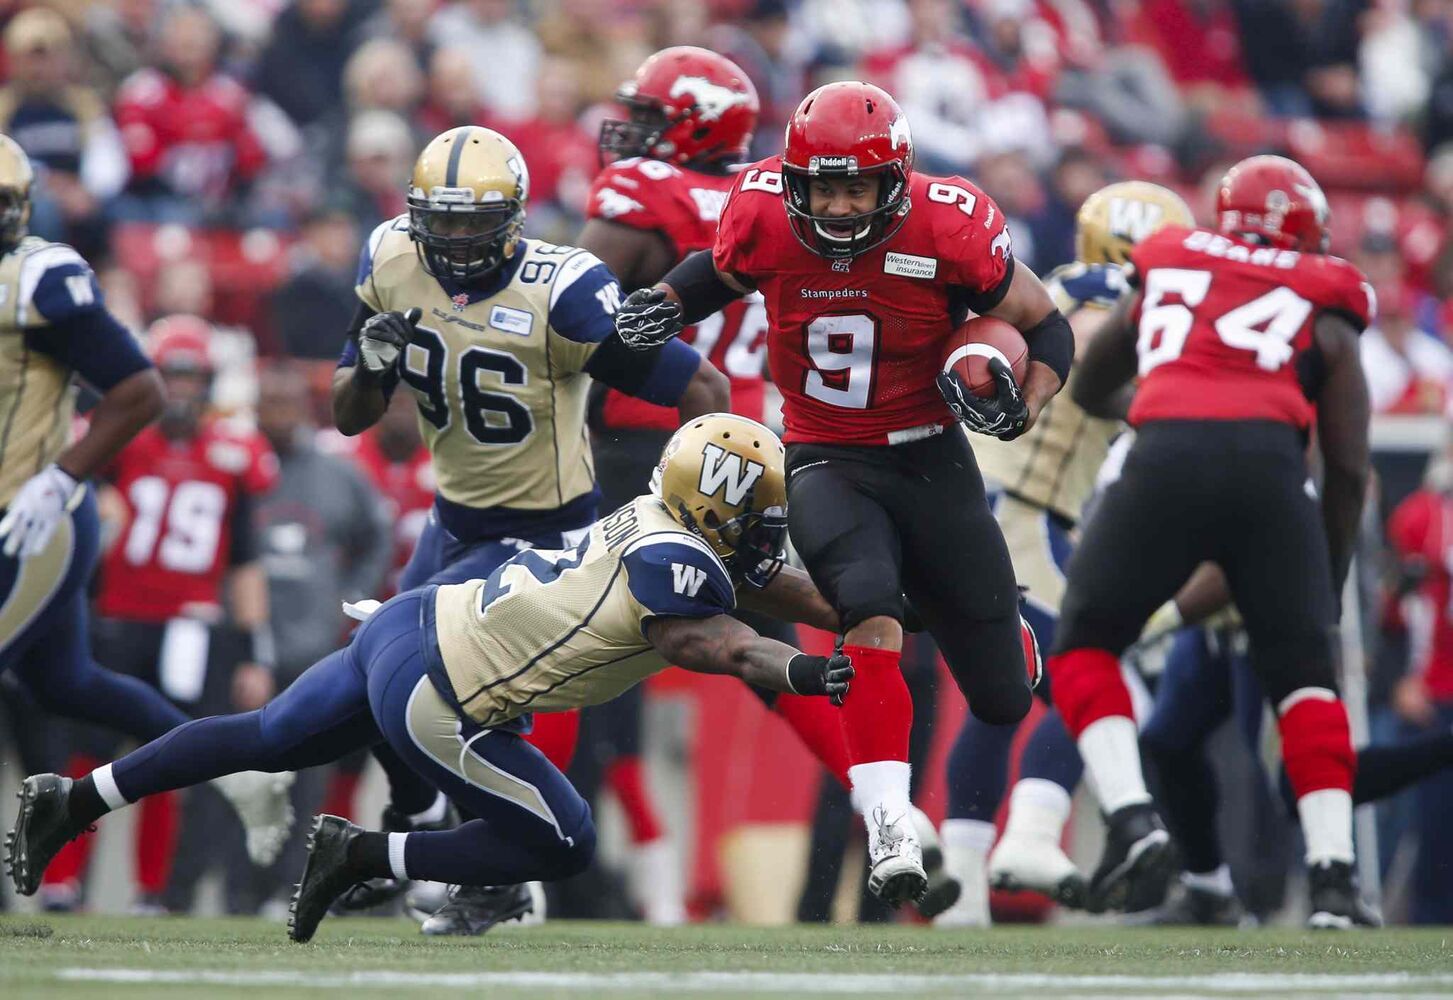 Winnipeg Blue Bombers' Jovon Johnson (bottom) tries to stop Calgary Stampeders' Jon Cornish on his way to a touchdown during the first half. (Jeff McIntosh / The Canadian Press)